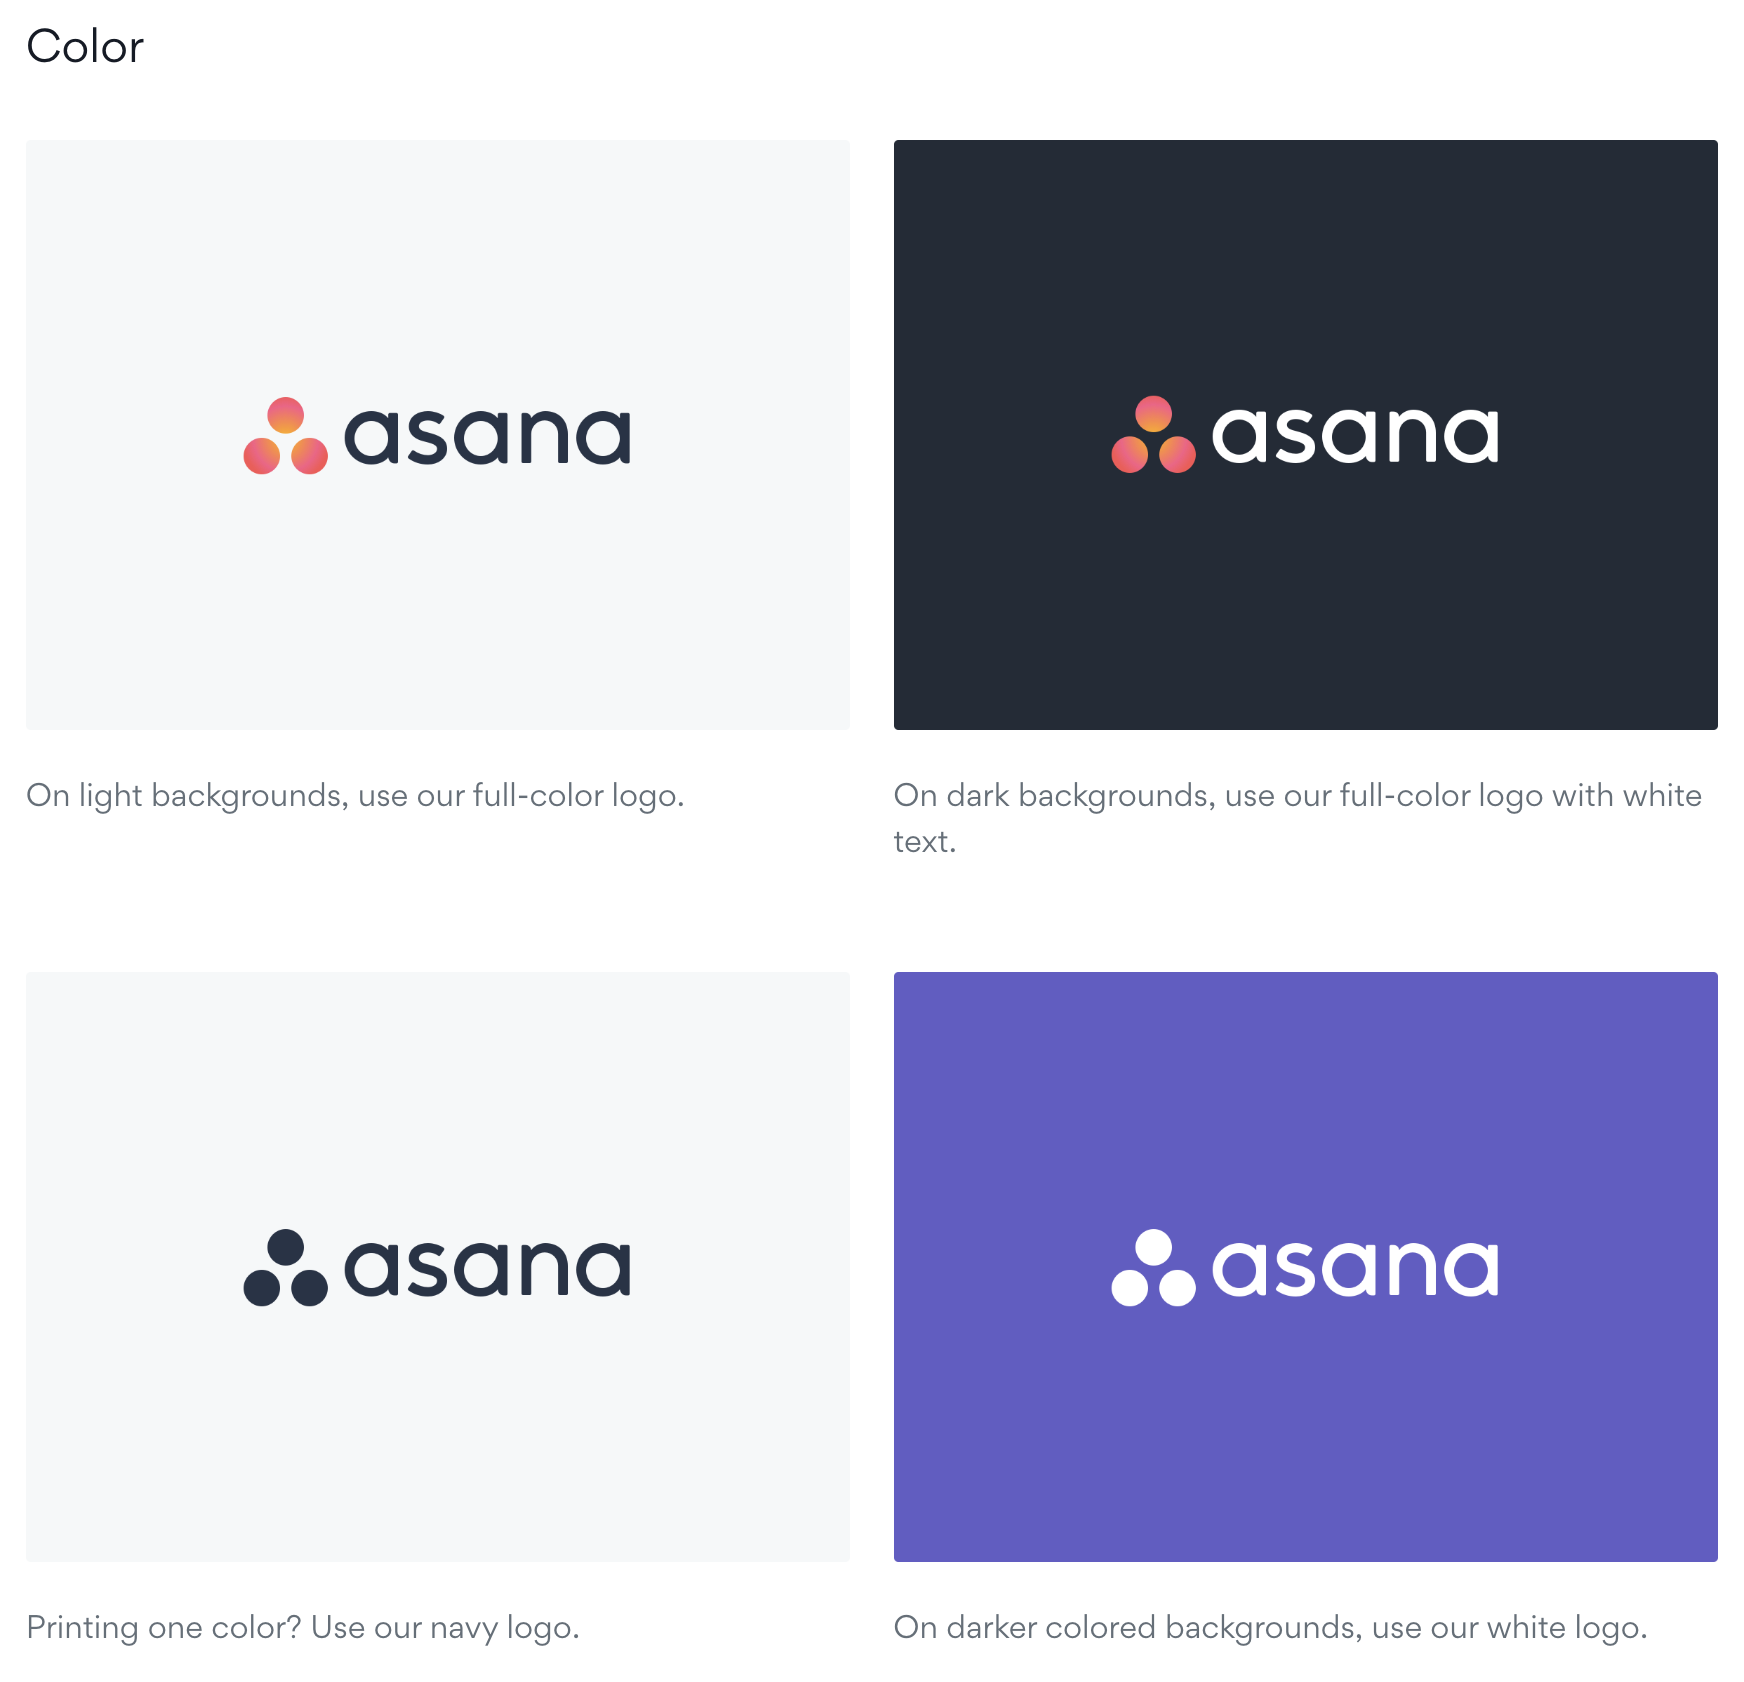 brand-style-guide-asana.png